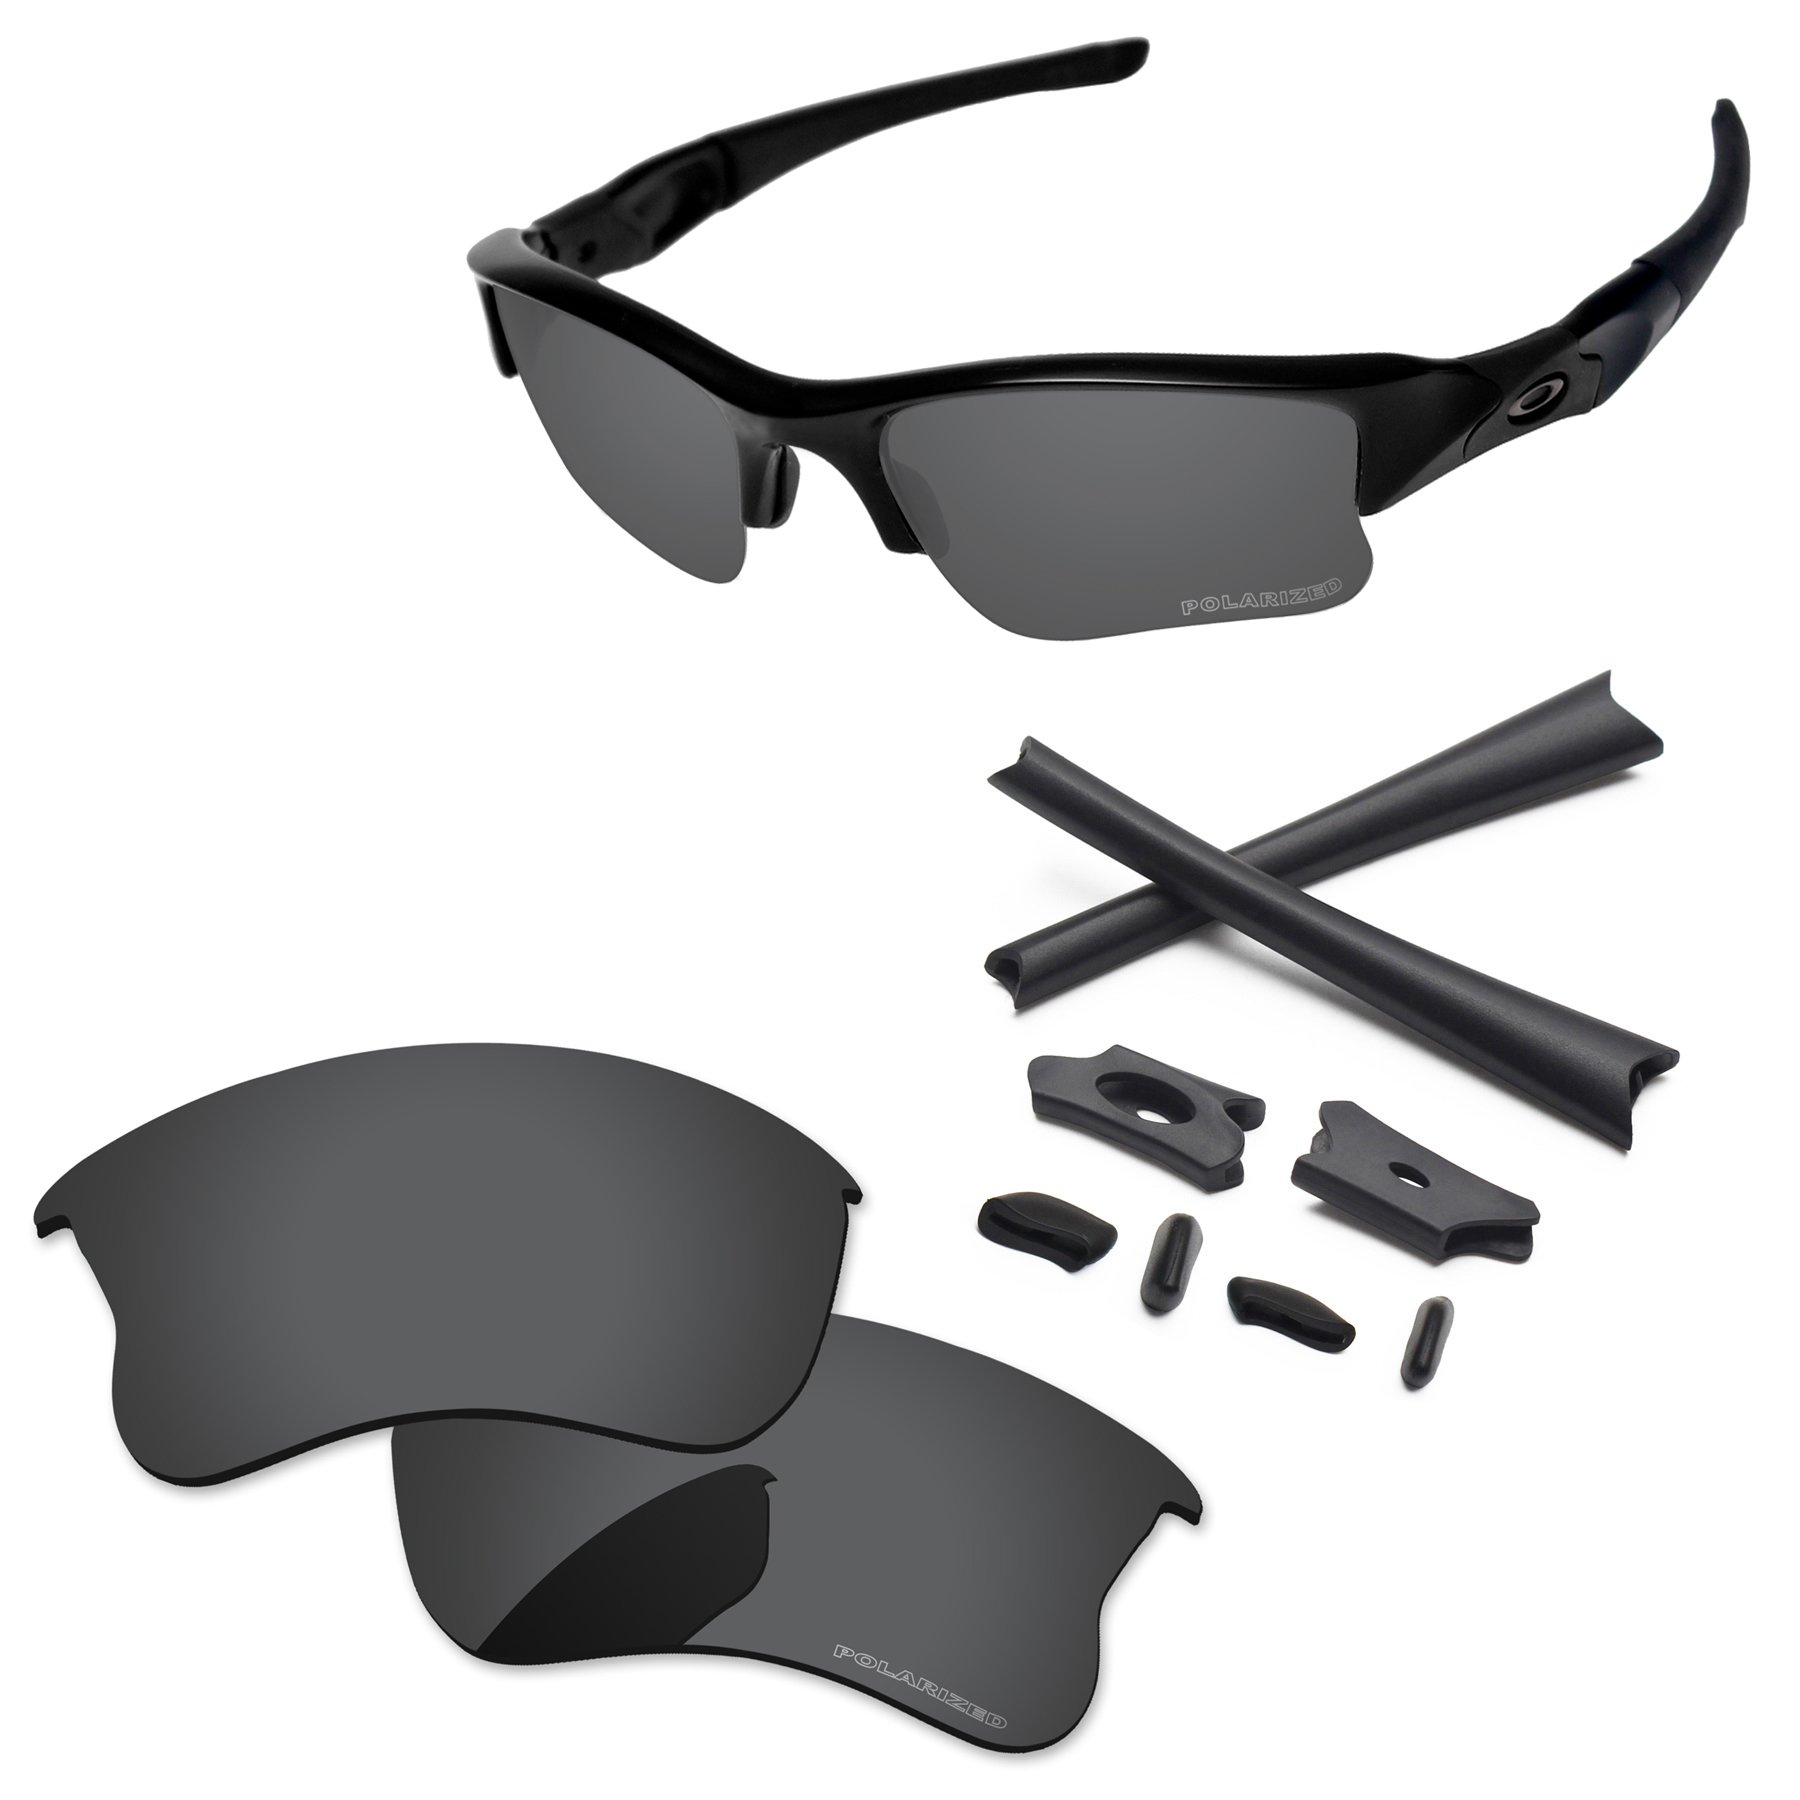 PapaViva Replacement Lenses & Rubber Kits for Oakley Flak Jacket XLJ Black Grey - Polarized by PapaViva